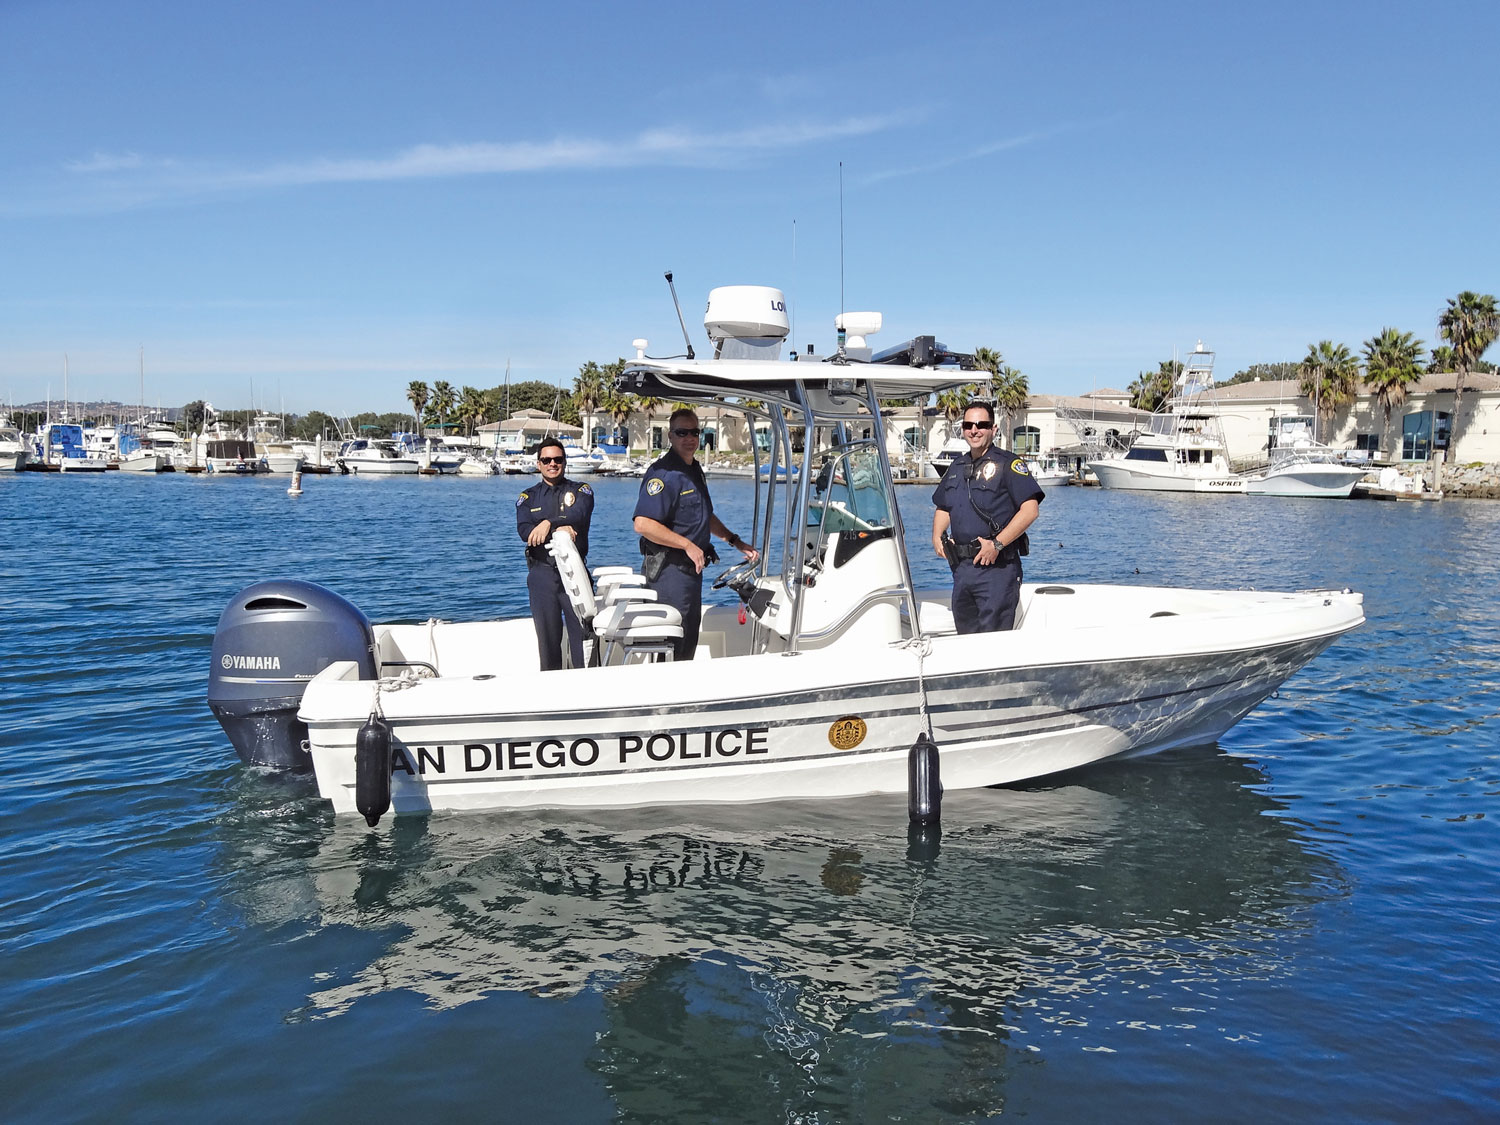 SDPD celebrates arrival of new boat